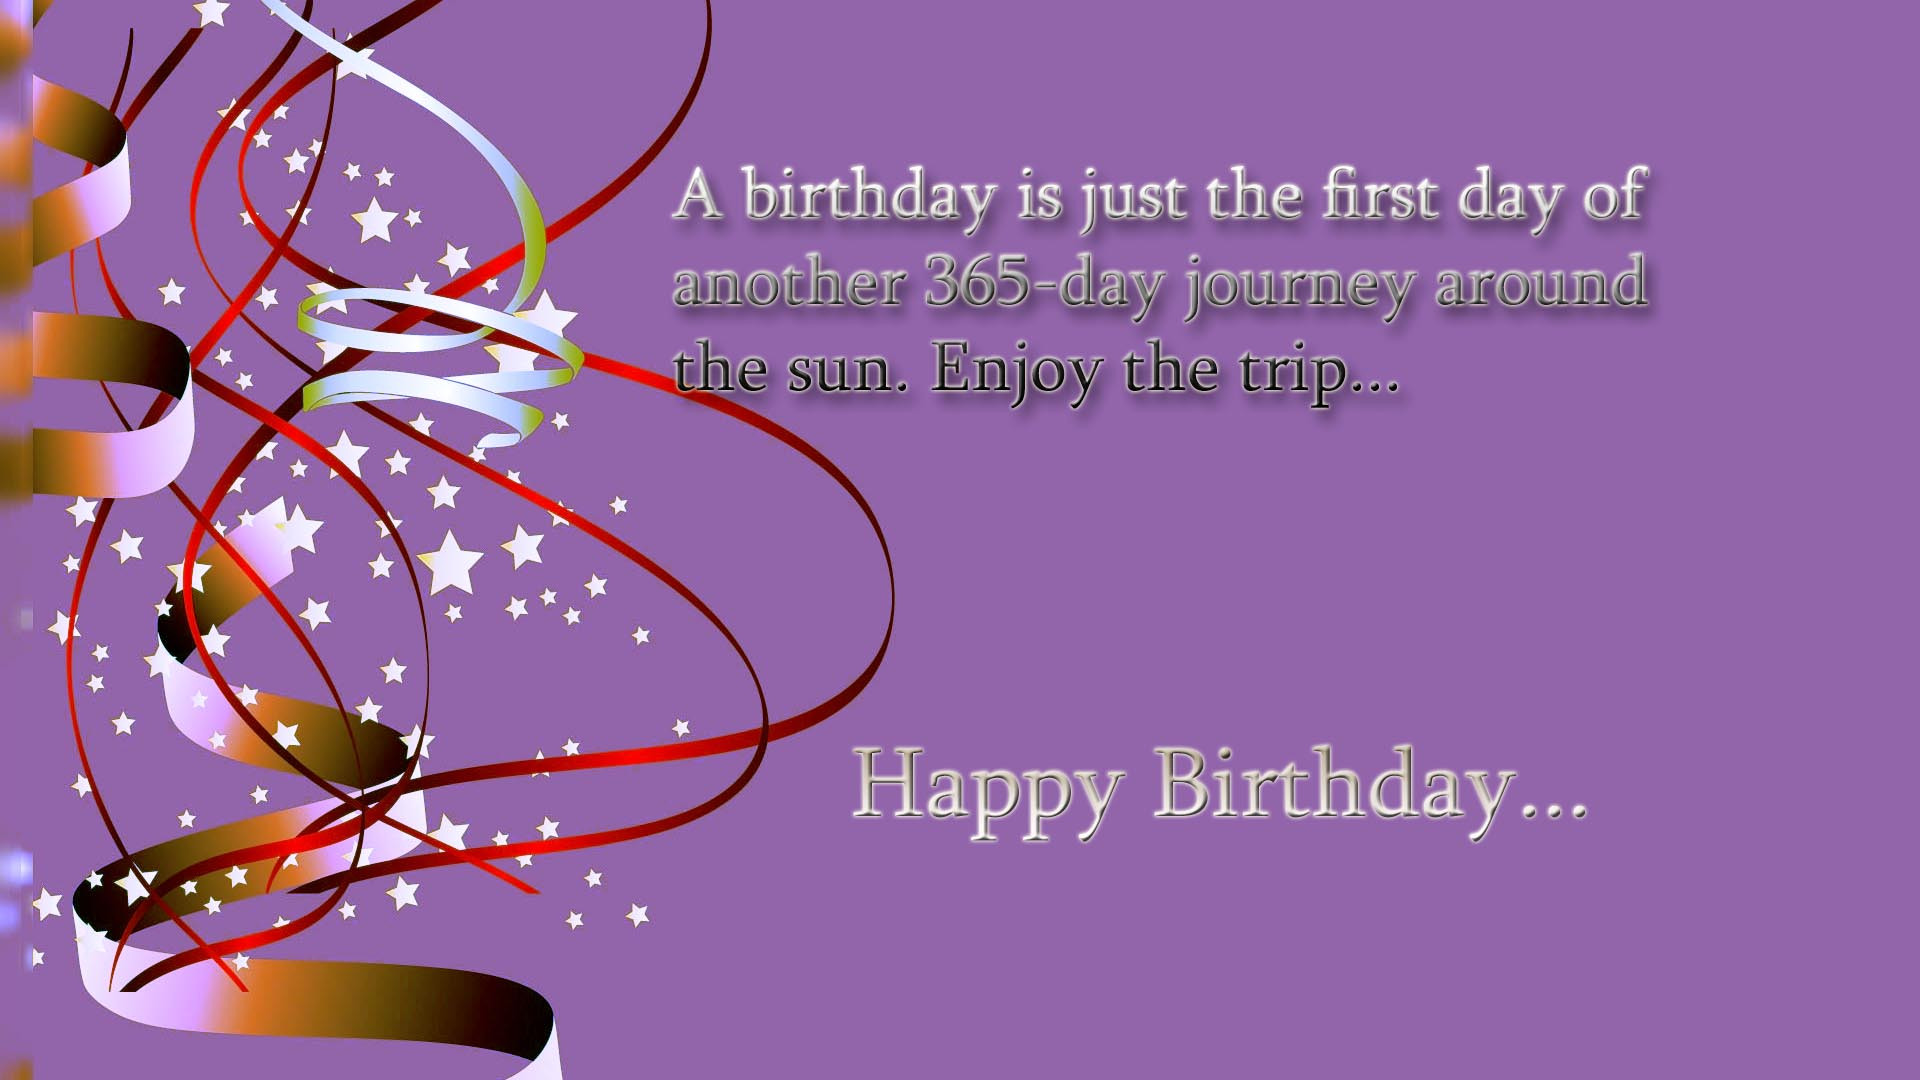 happy birthday quotes images hd ; fresh-happy-birthday-greetings-wishes-hd-free-of-happy-birthday-wishes-image-download